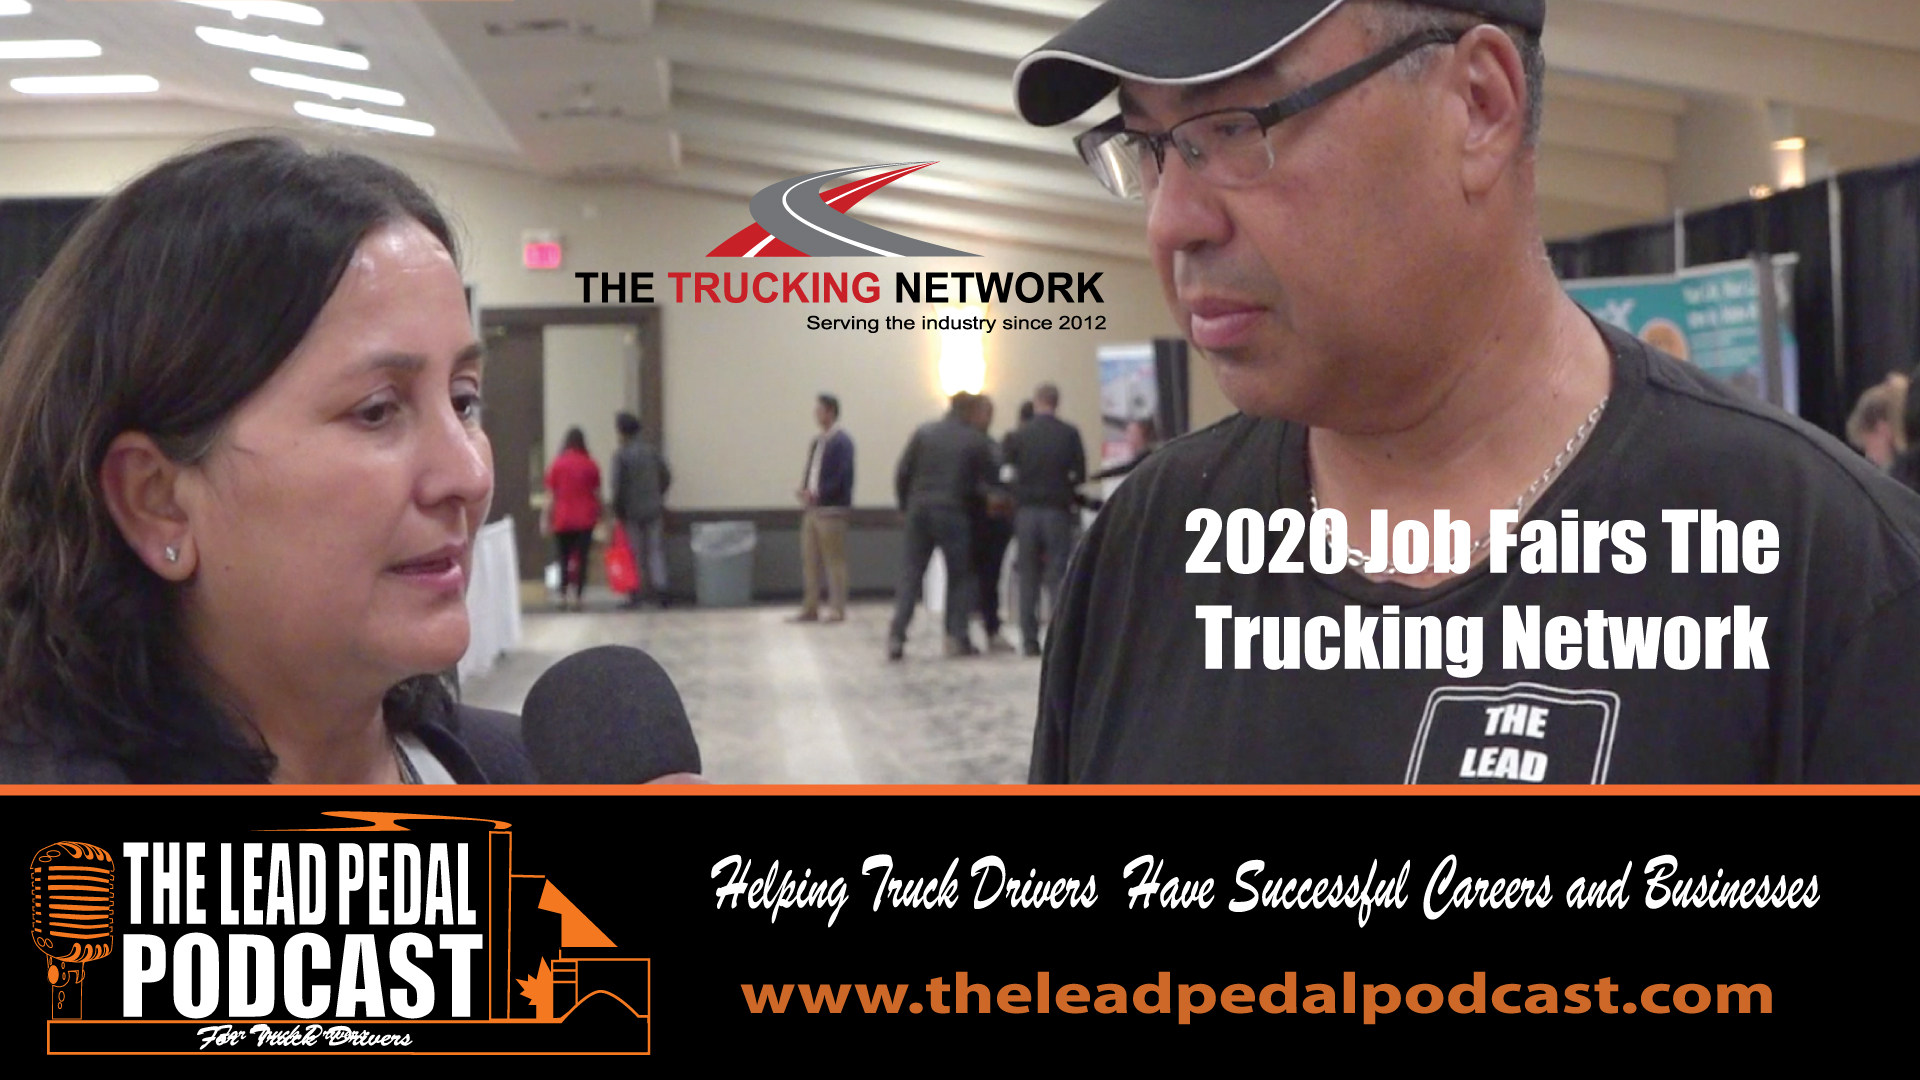 The Trucking Network Events